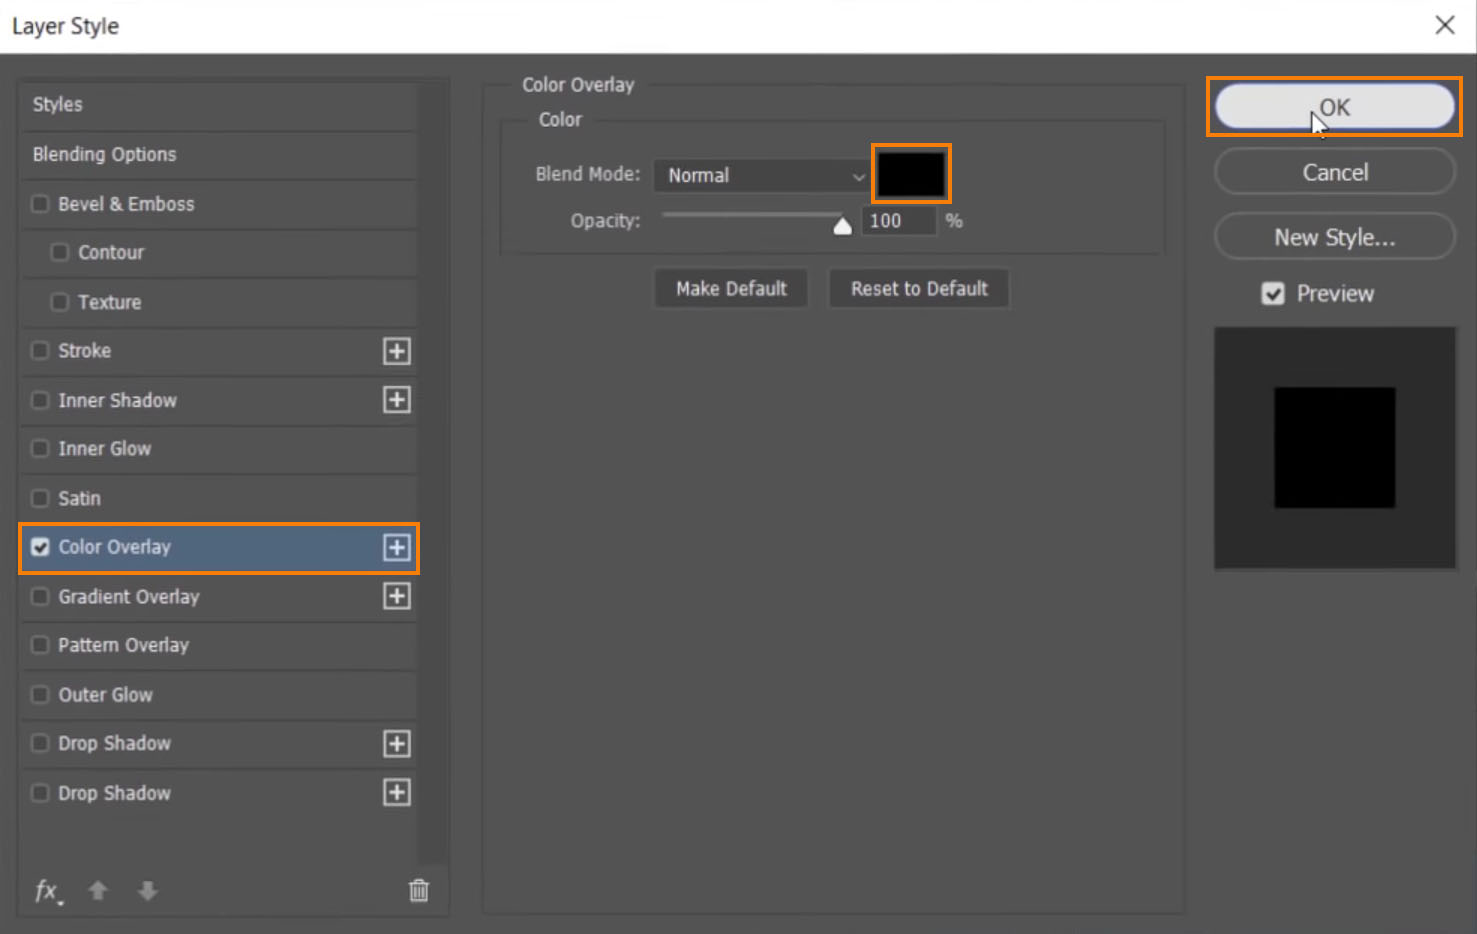 Click on Color Overlay, set the color to black, and press OK